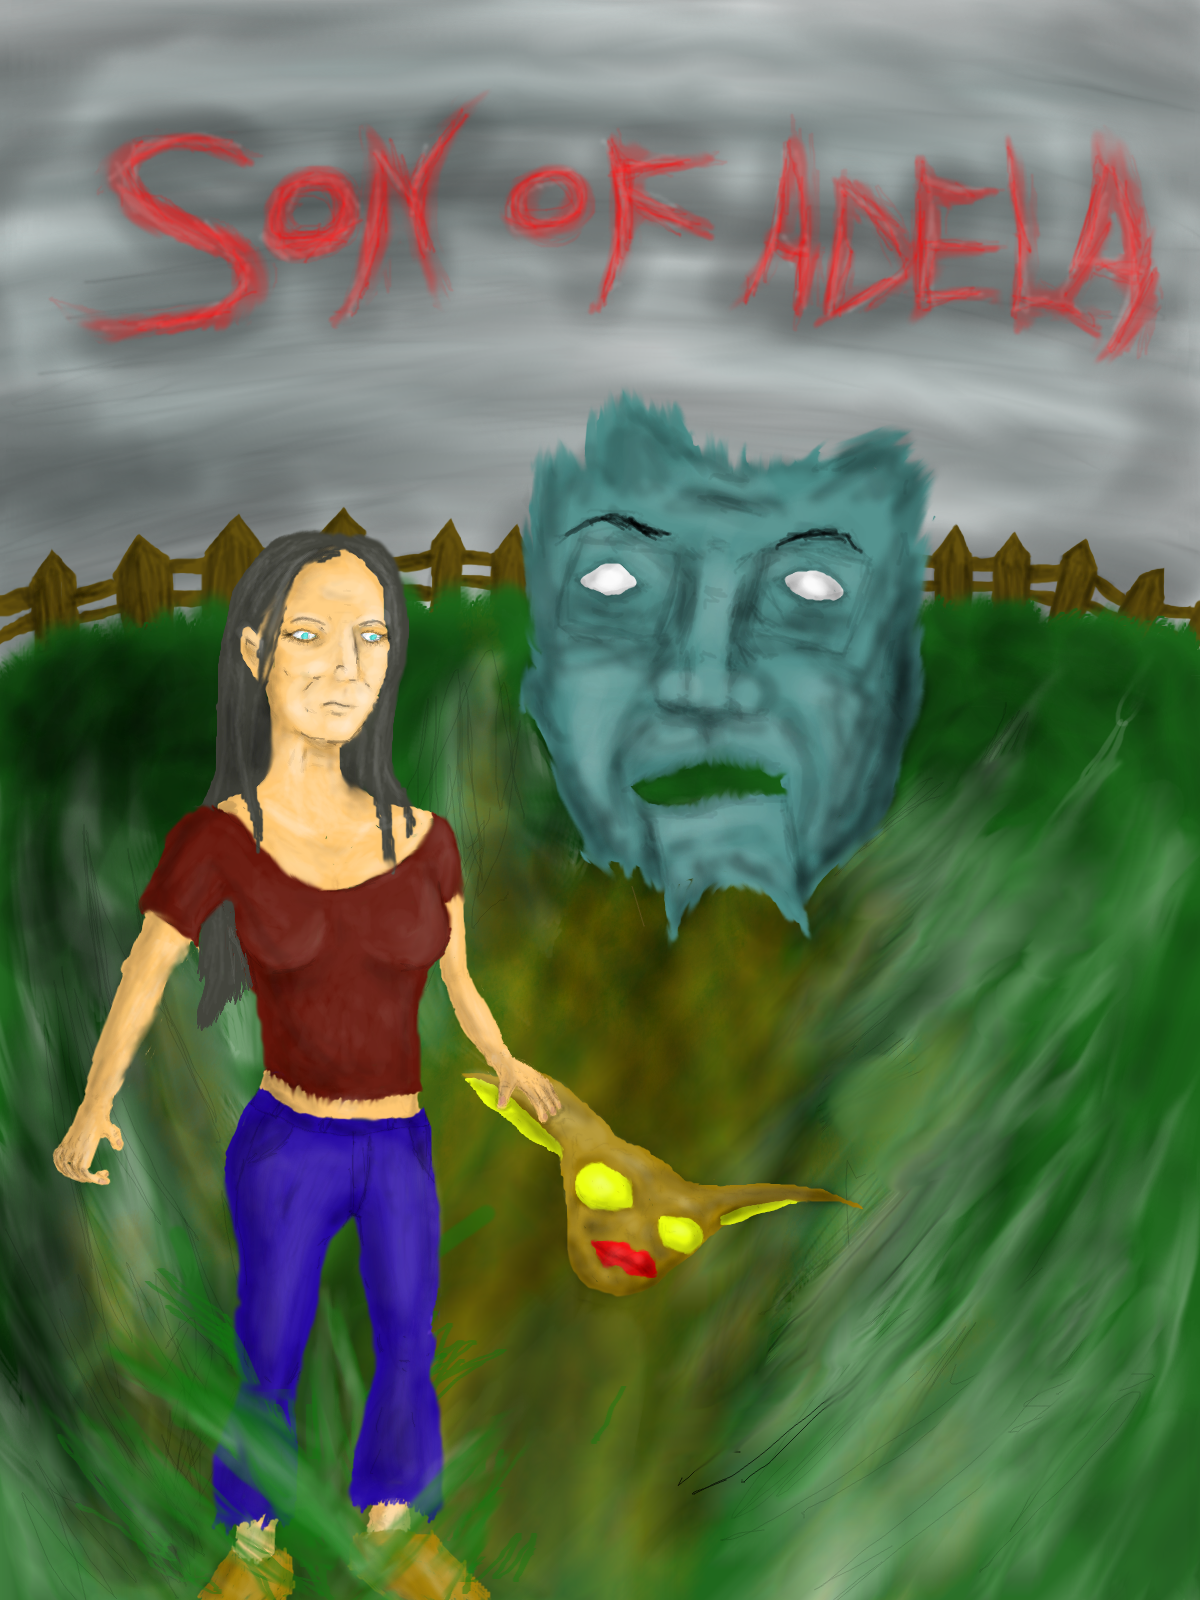 Son of Adela Illustration 1